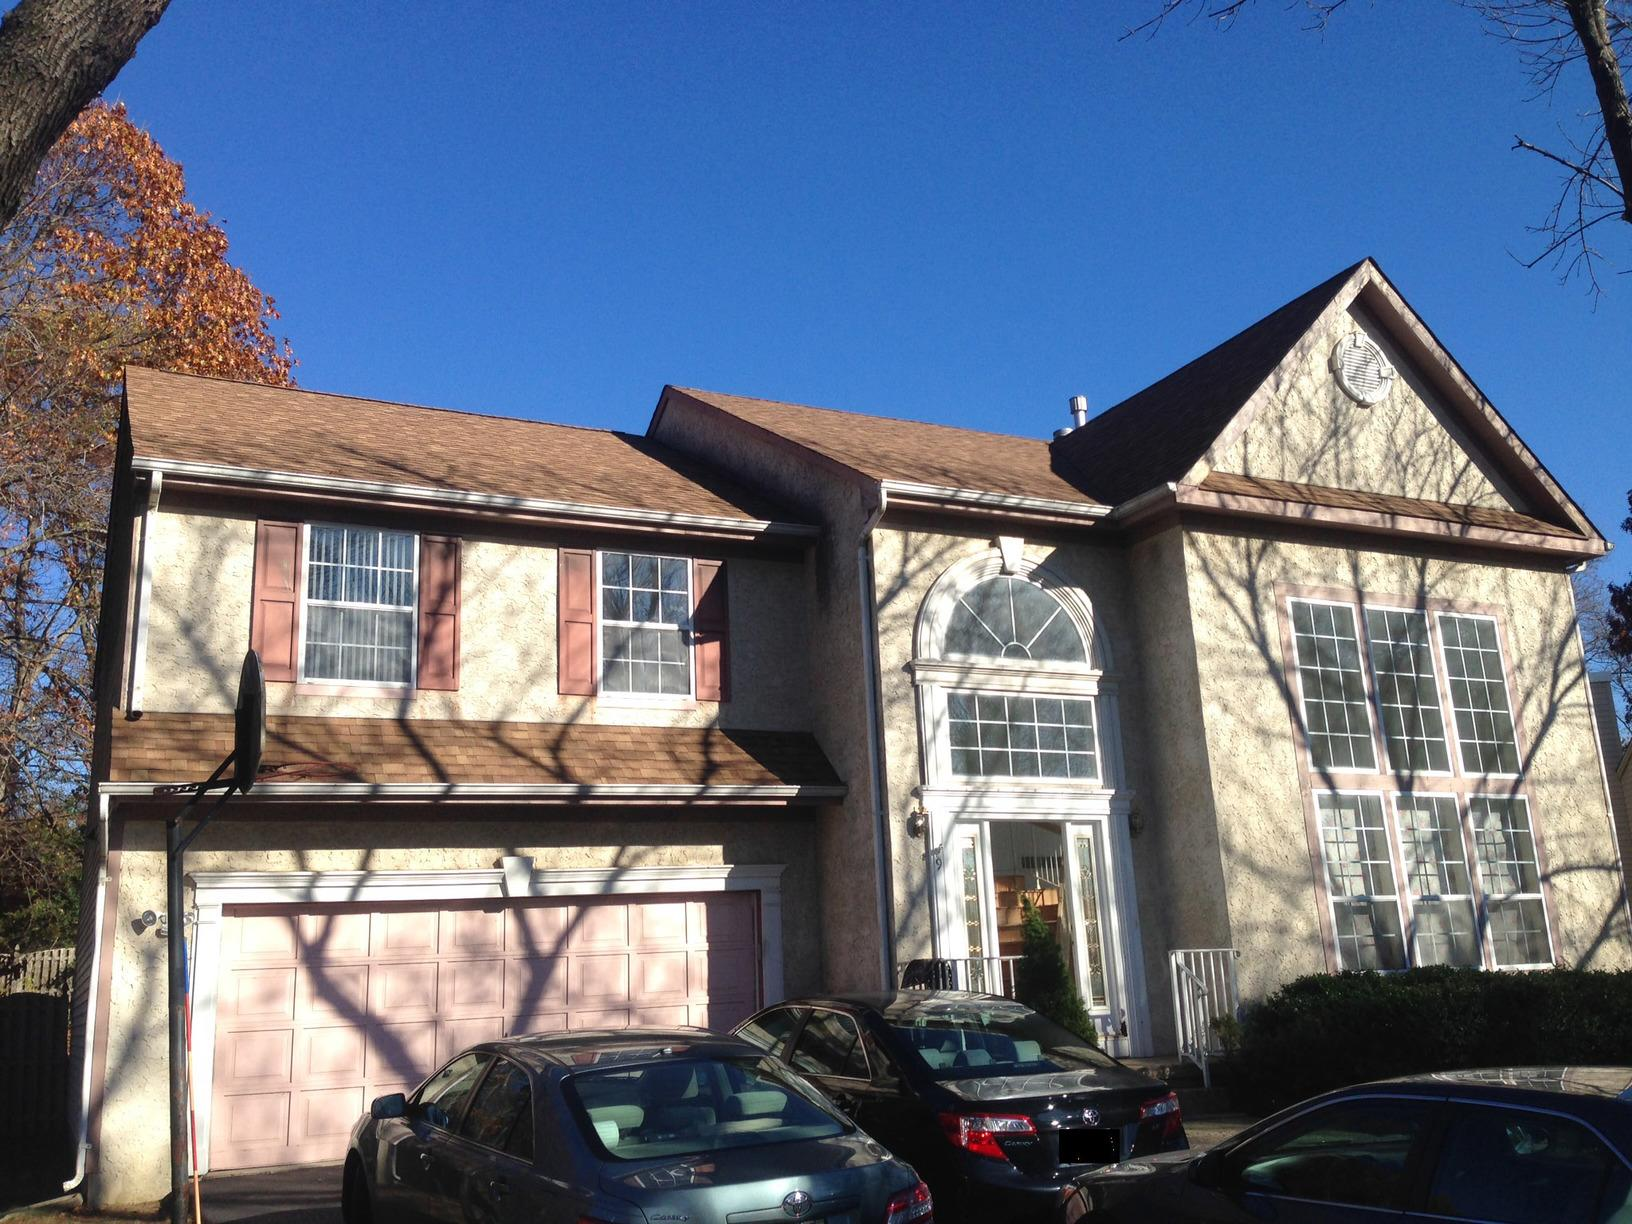 Brownwood Roof Replacement East Brunswick NJ - After Photo